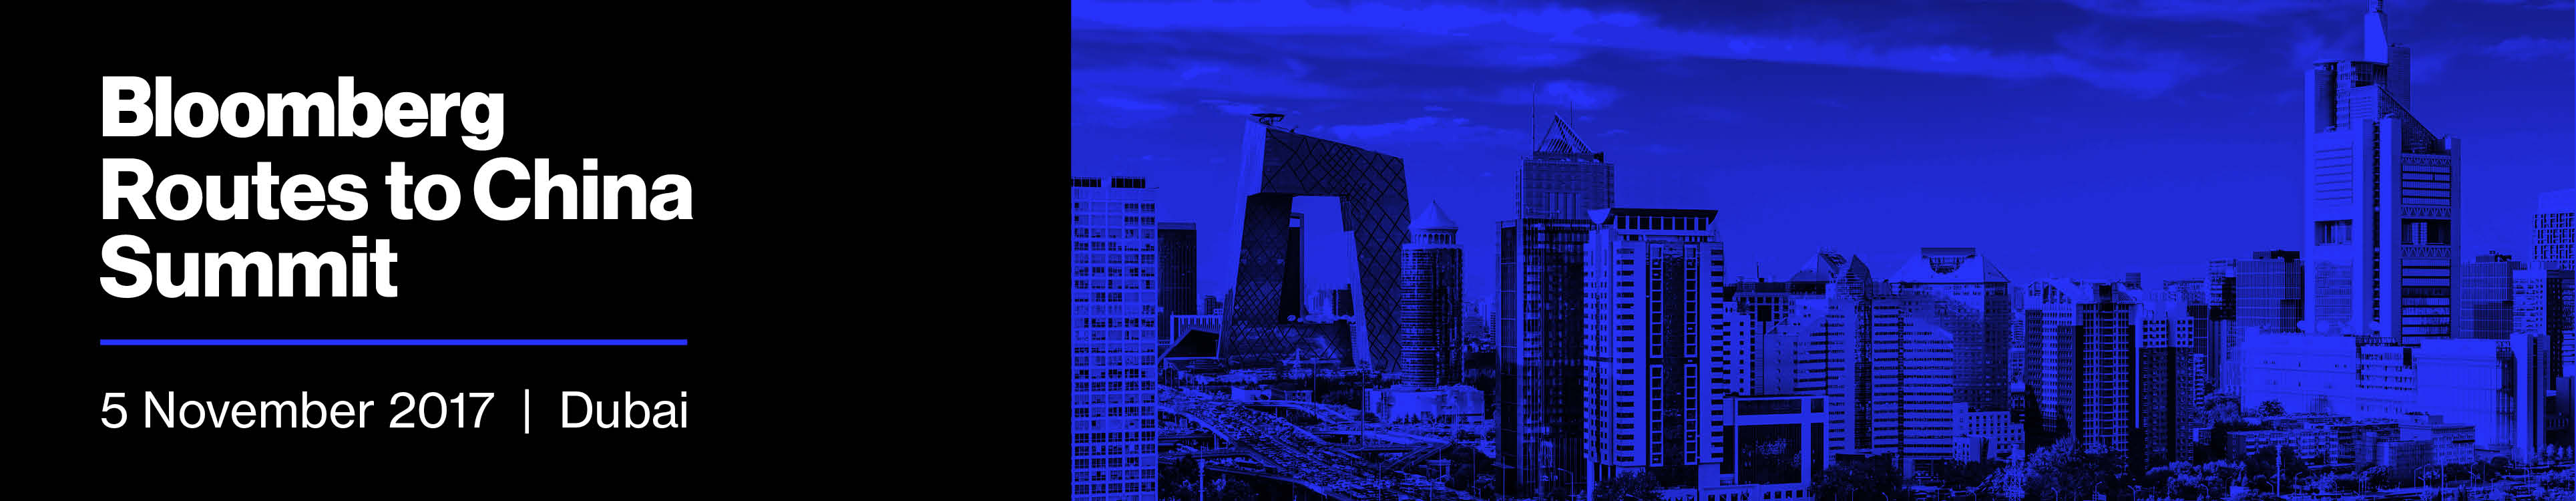 Bloomberg Routes to China Summit